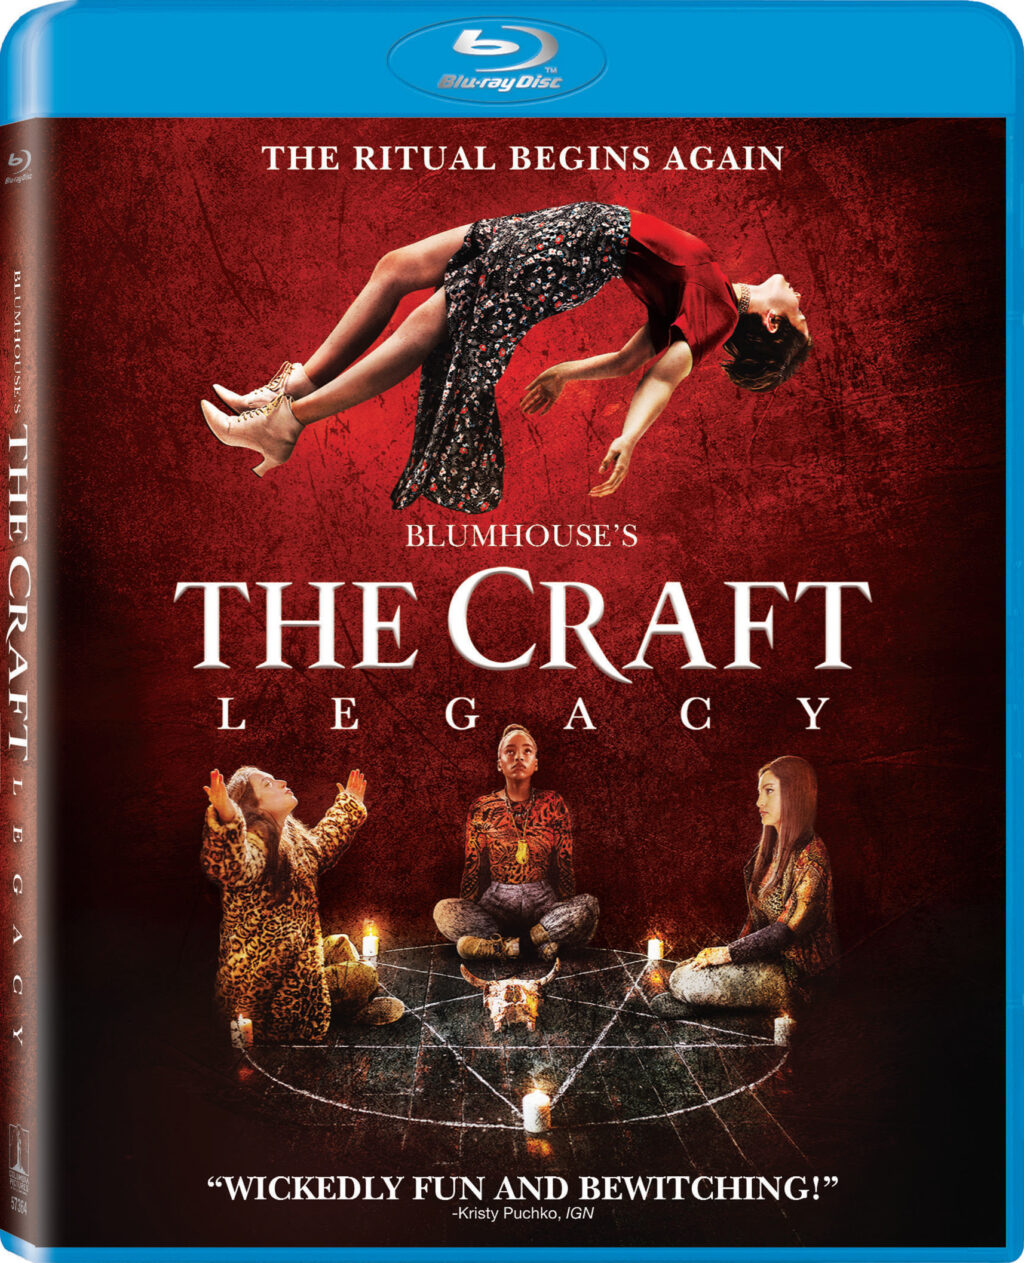 The Craft Legacy will be released on Blu ray 1024x1263 - THE CRAFT: LEGACY Hits Blu-ray & DVD 12/22